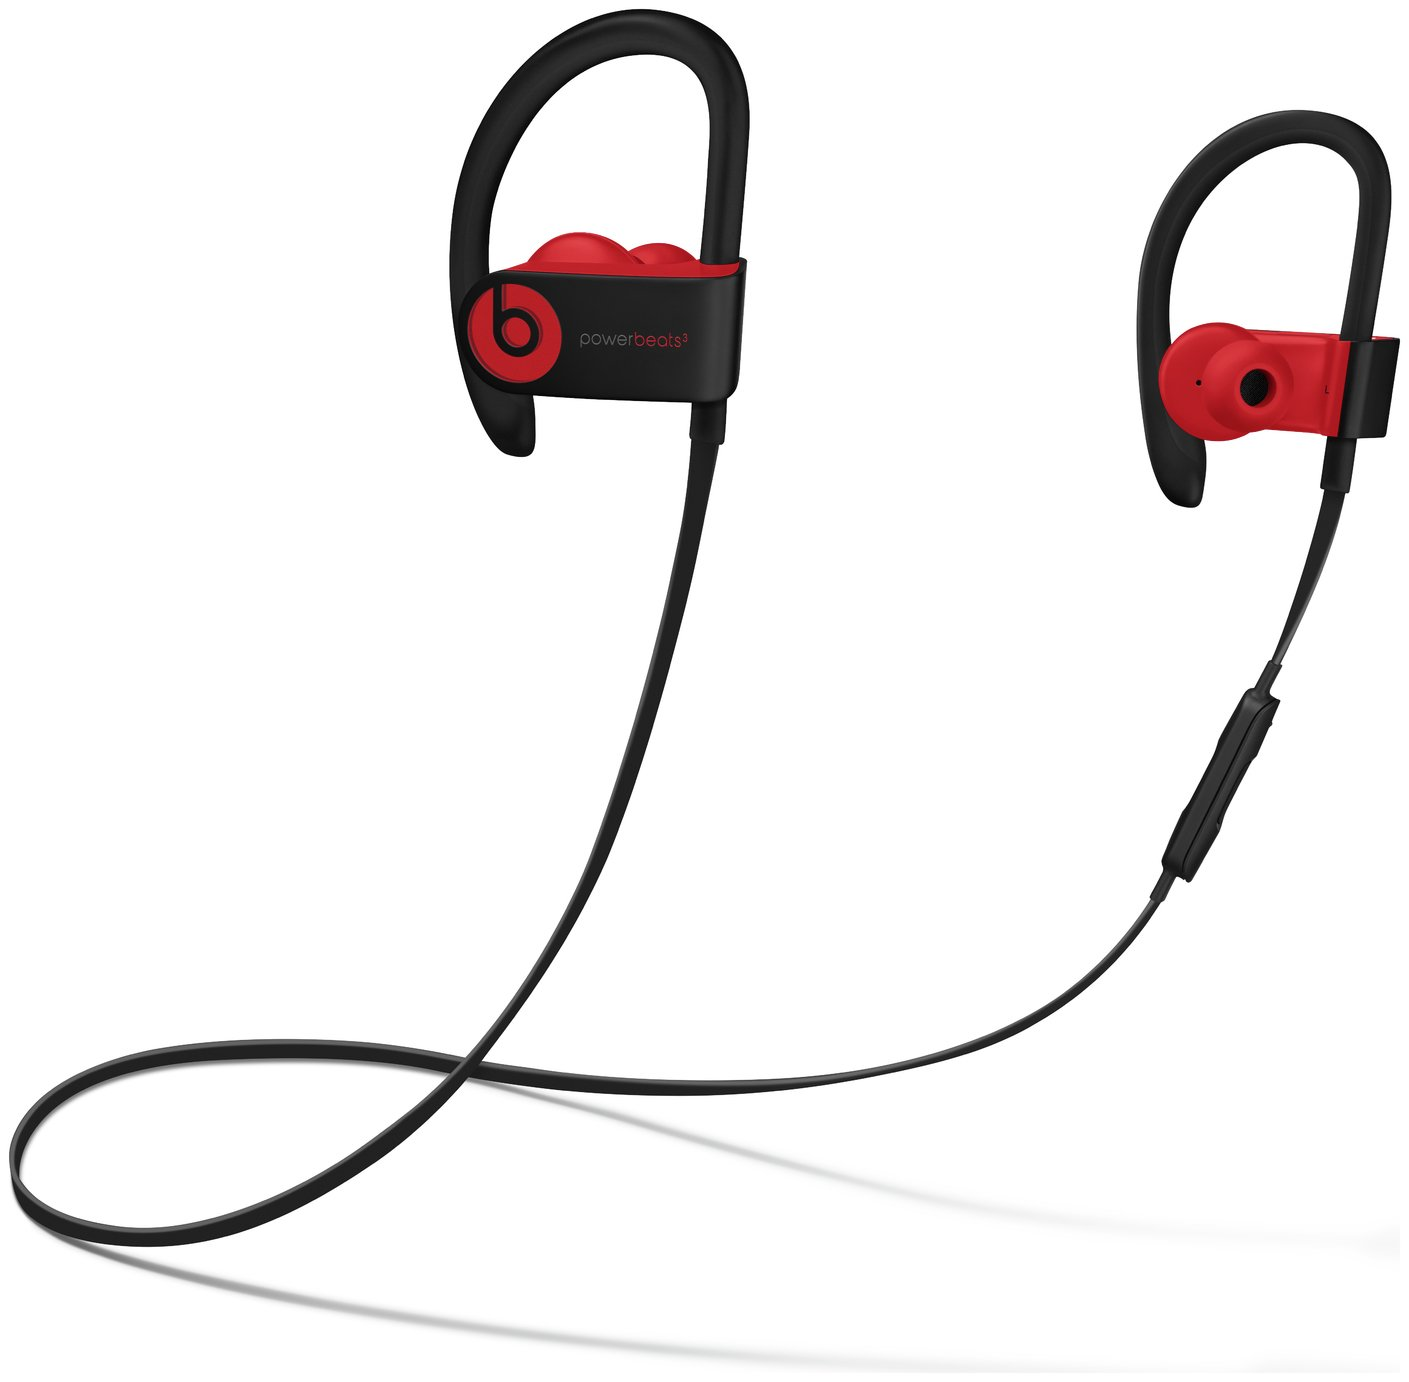 Beats by Dre Powerbeats 3 Headphones Decade Collection